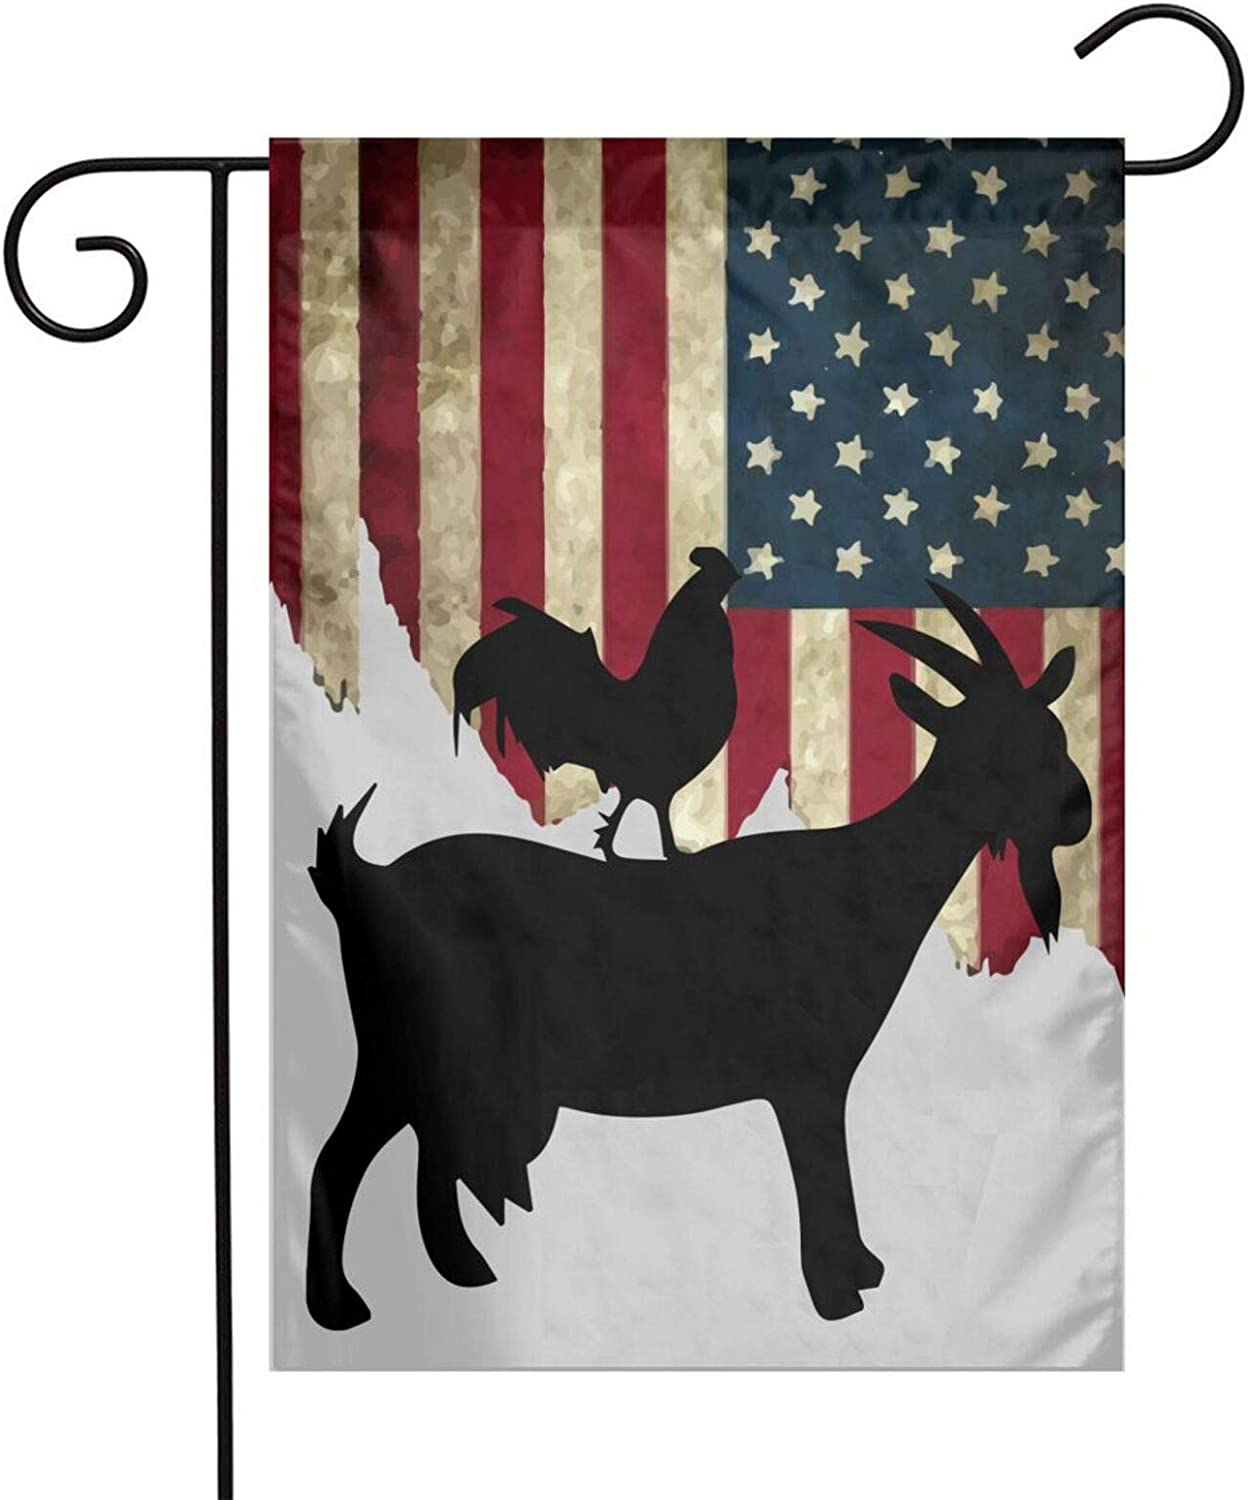 Jpnvxie Goat and Rooster Garden Flags Labrador Black Labs Matter Welcome Large Yard Double Sided House Flag Banners for Patio Lawn Home Outdoor Decor 12.5x18In